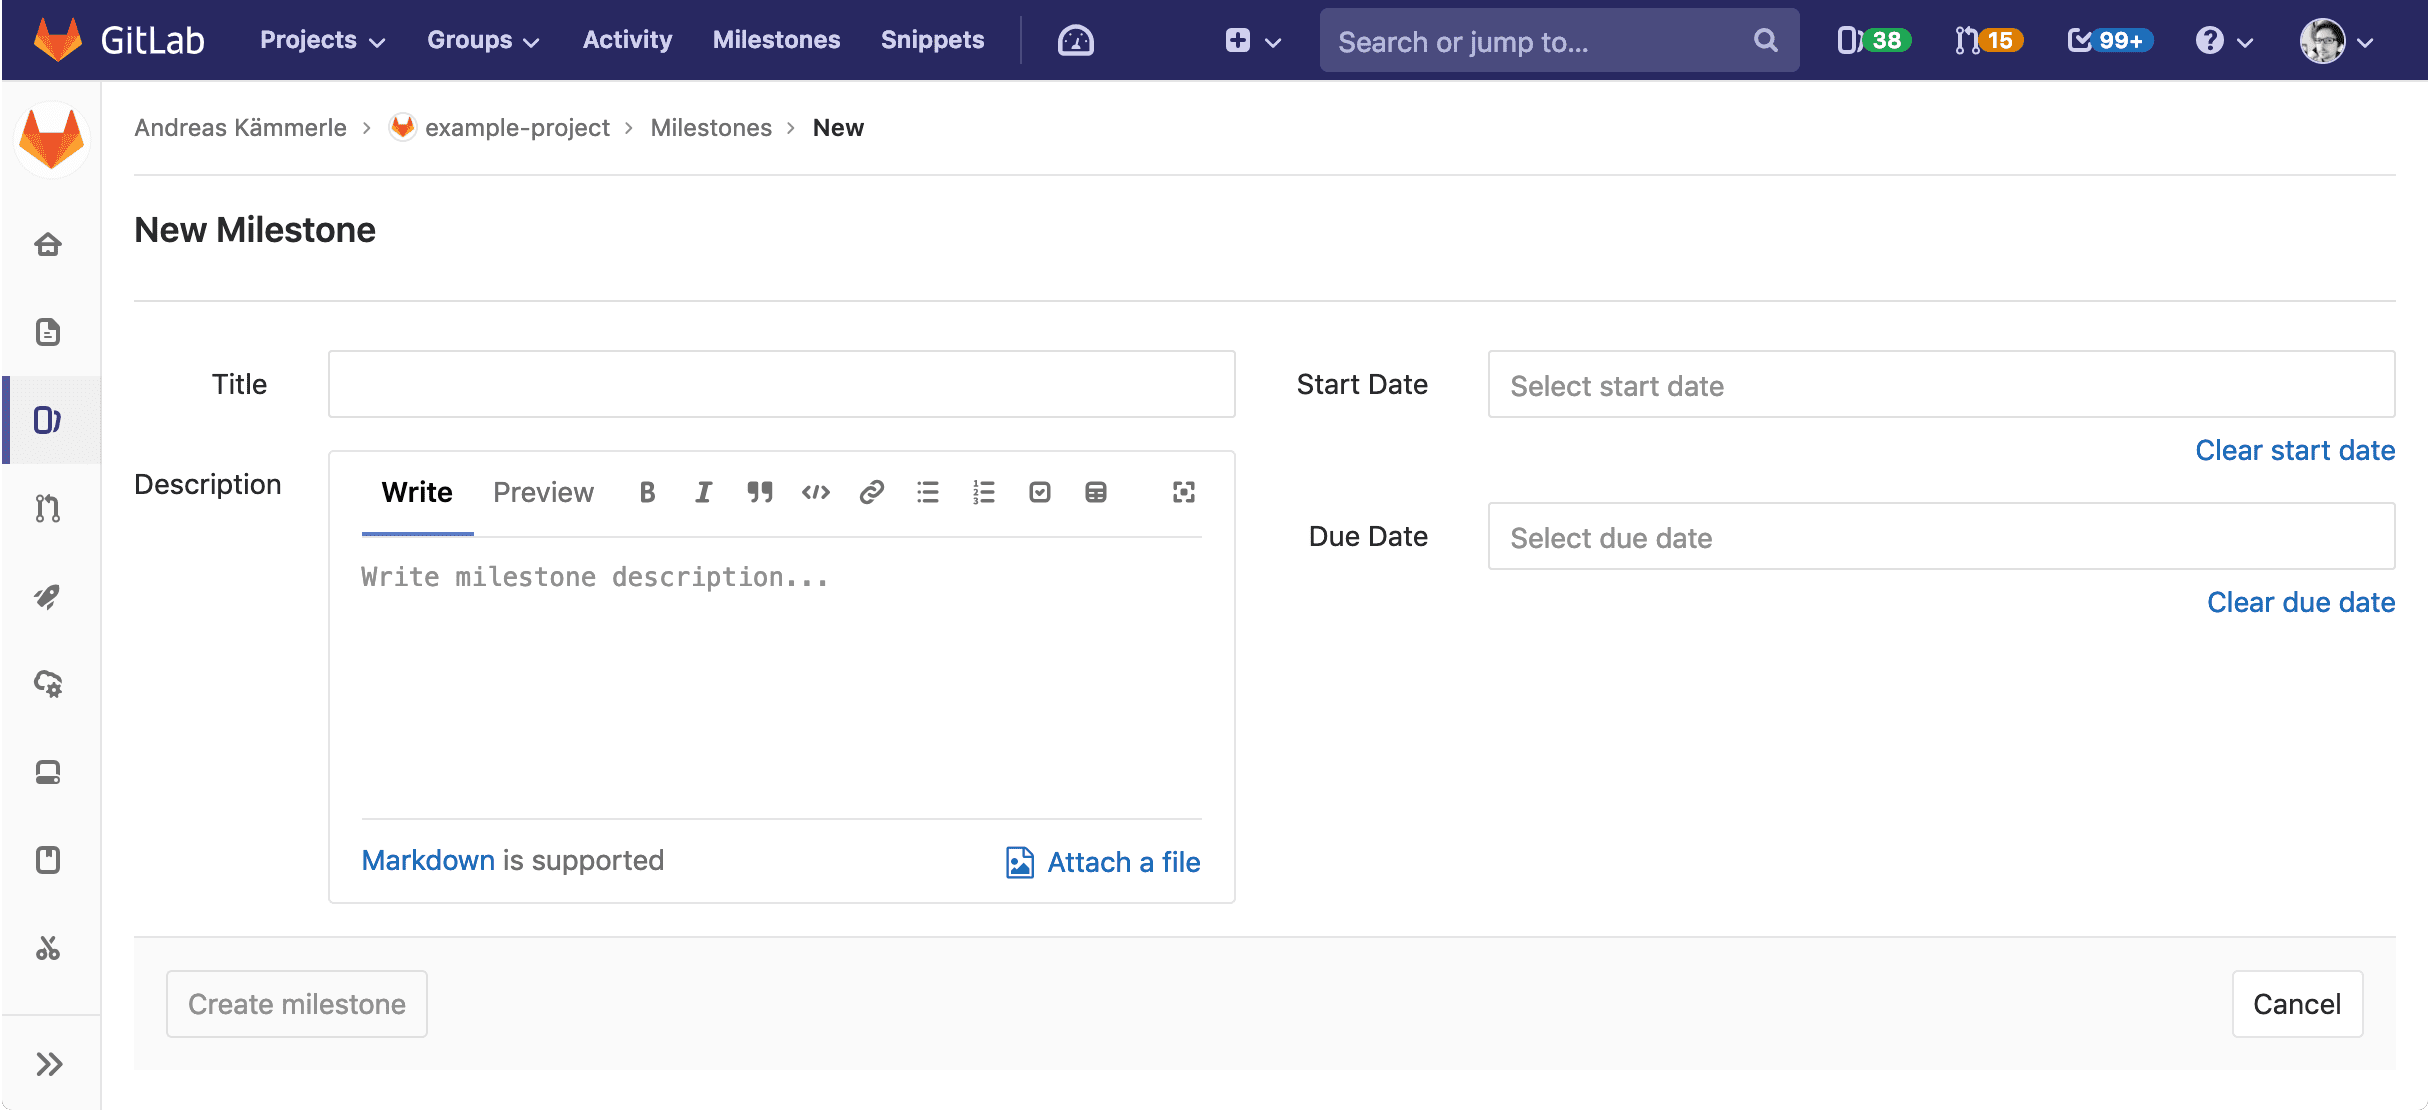 Breadcrumb navigation shows 'New' and 'Edit' for milestones and labels